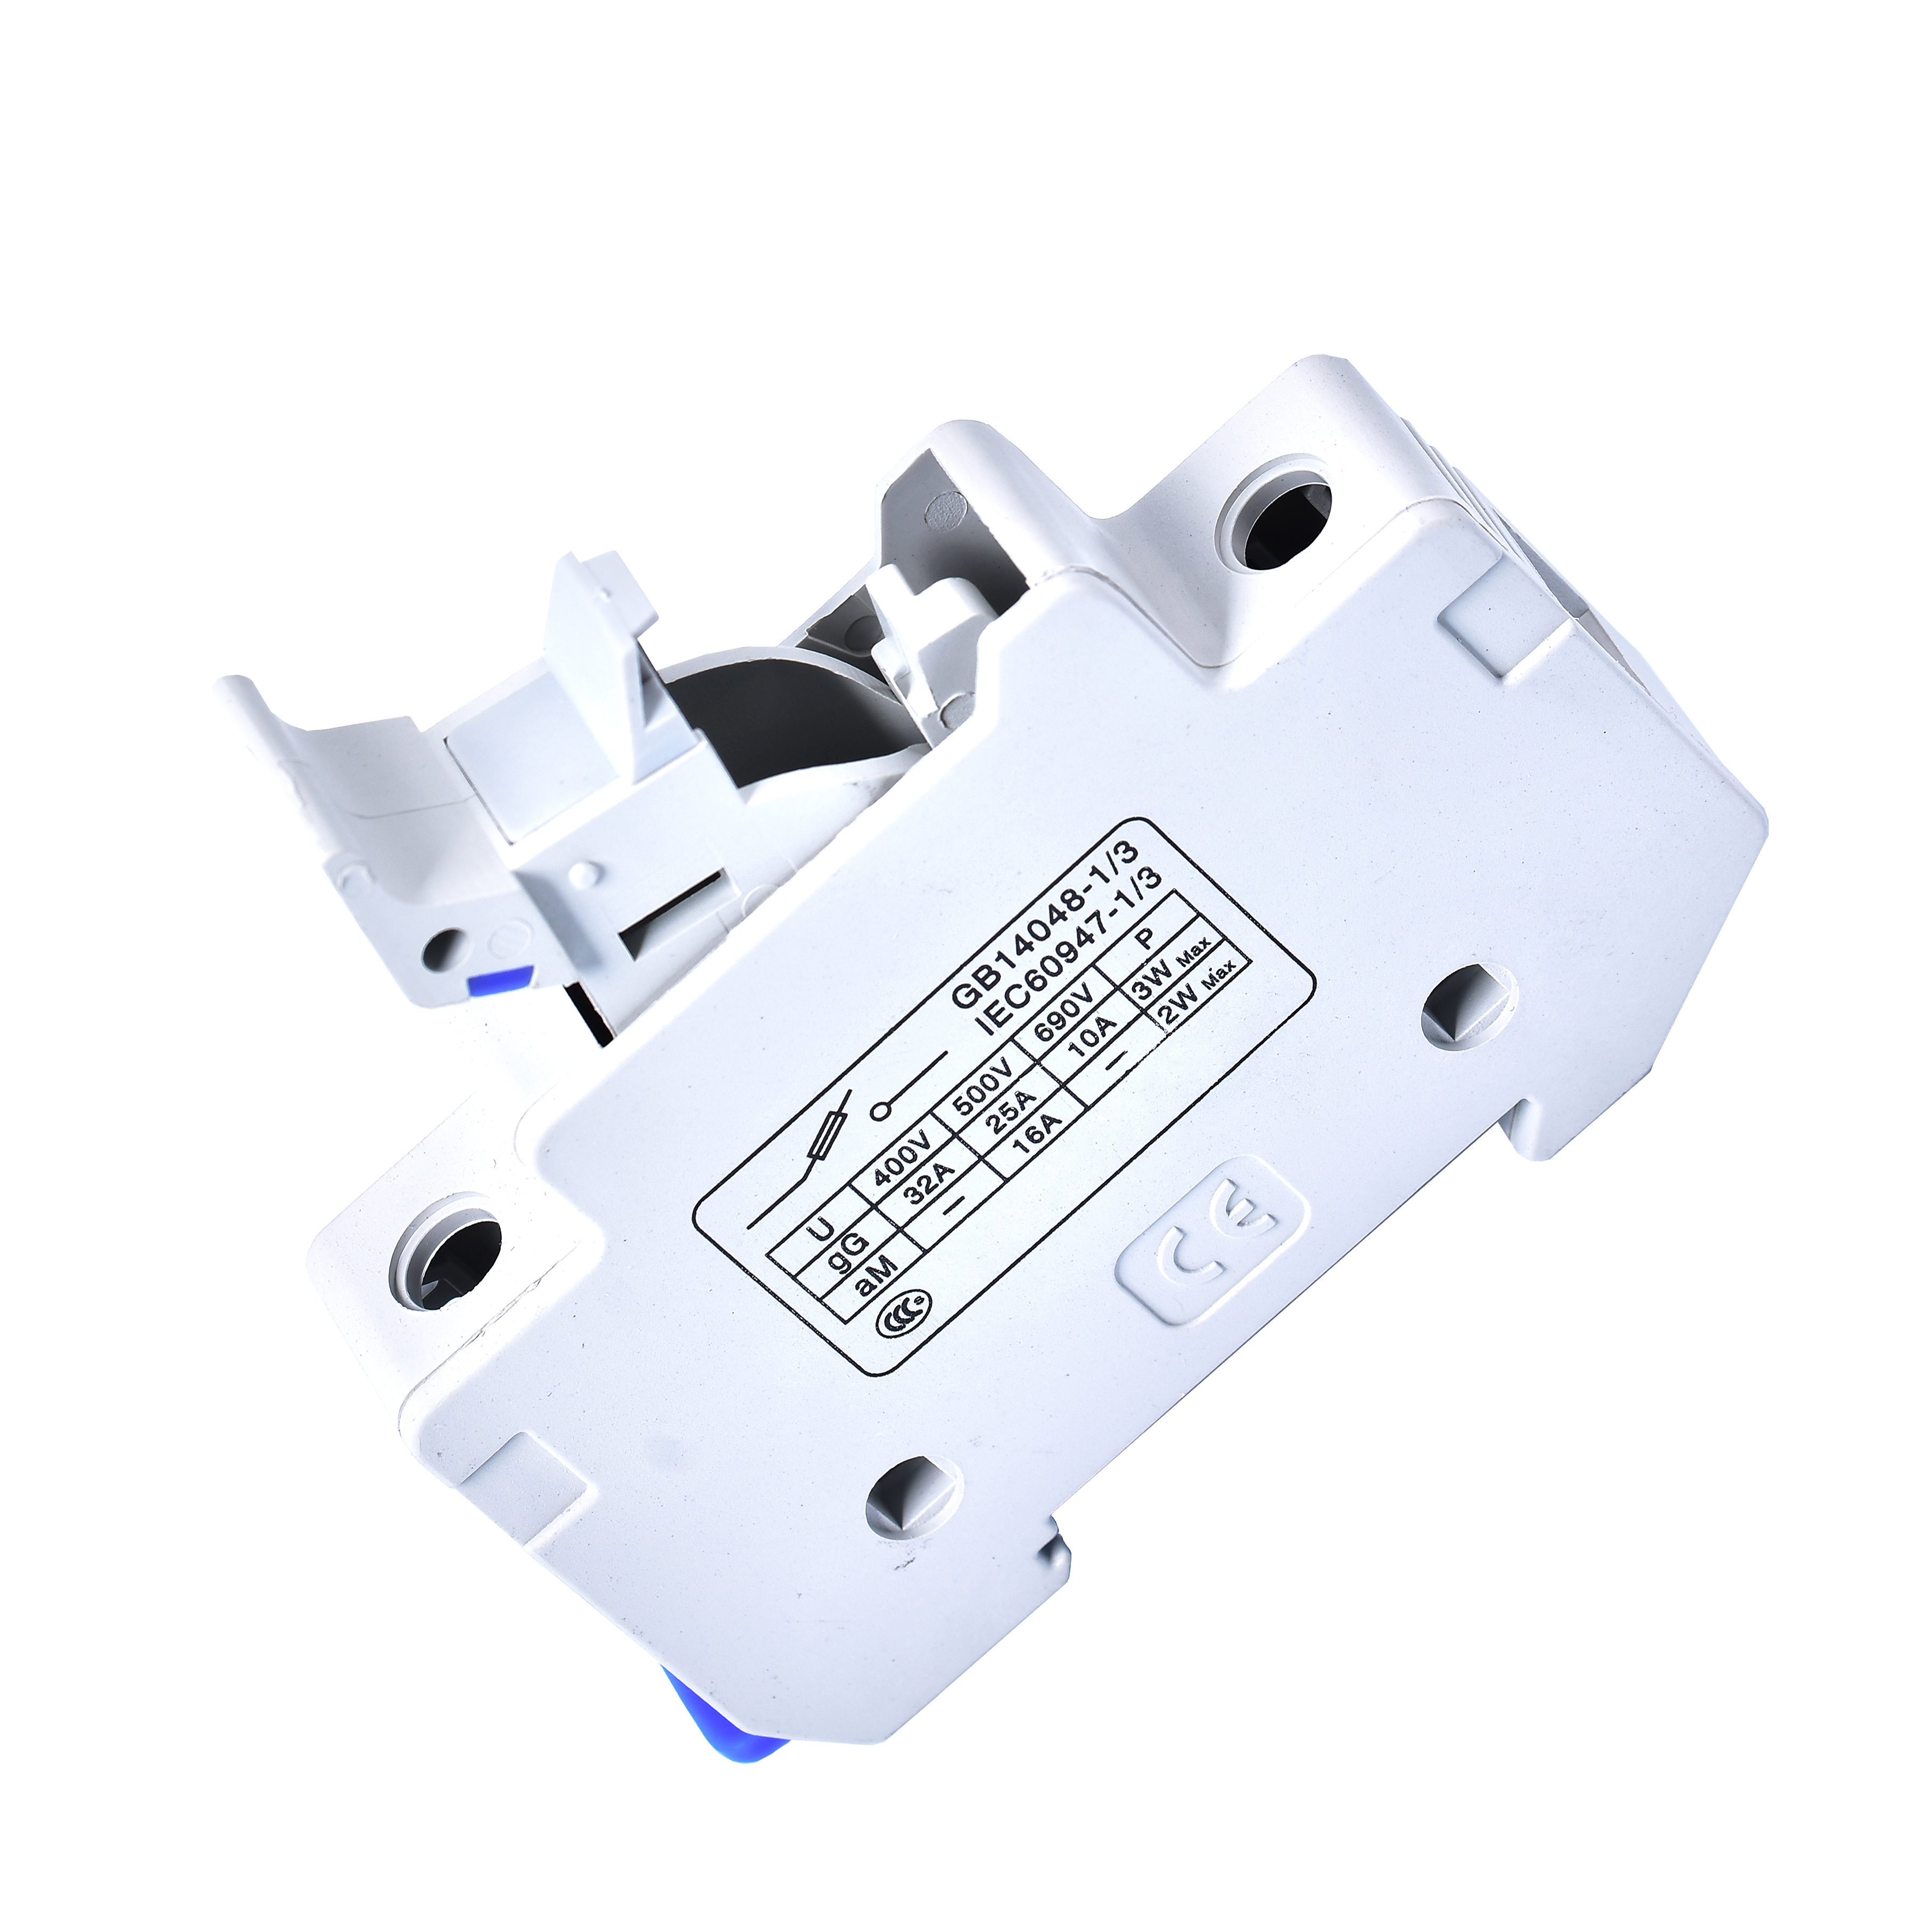 China Plastic Fuse Manufacturers And Suppliers Wiring Kits Subwoofer Kit Fusechina On